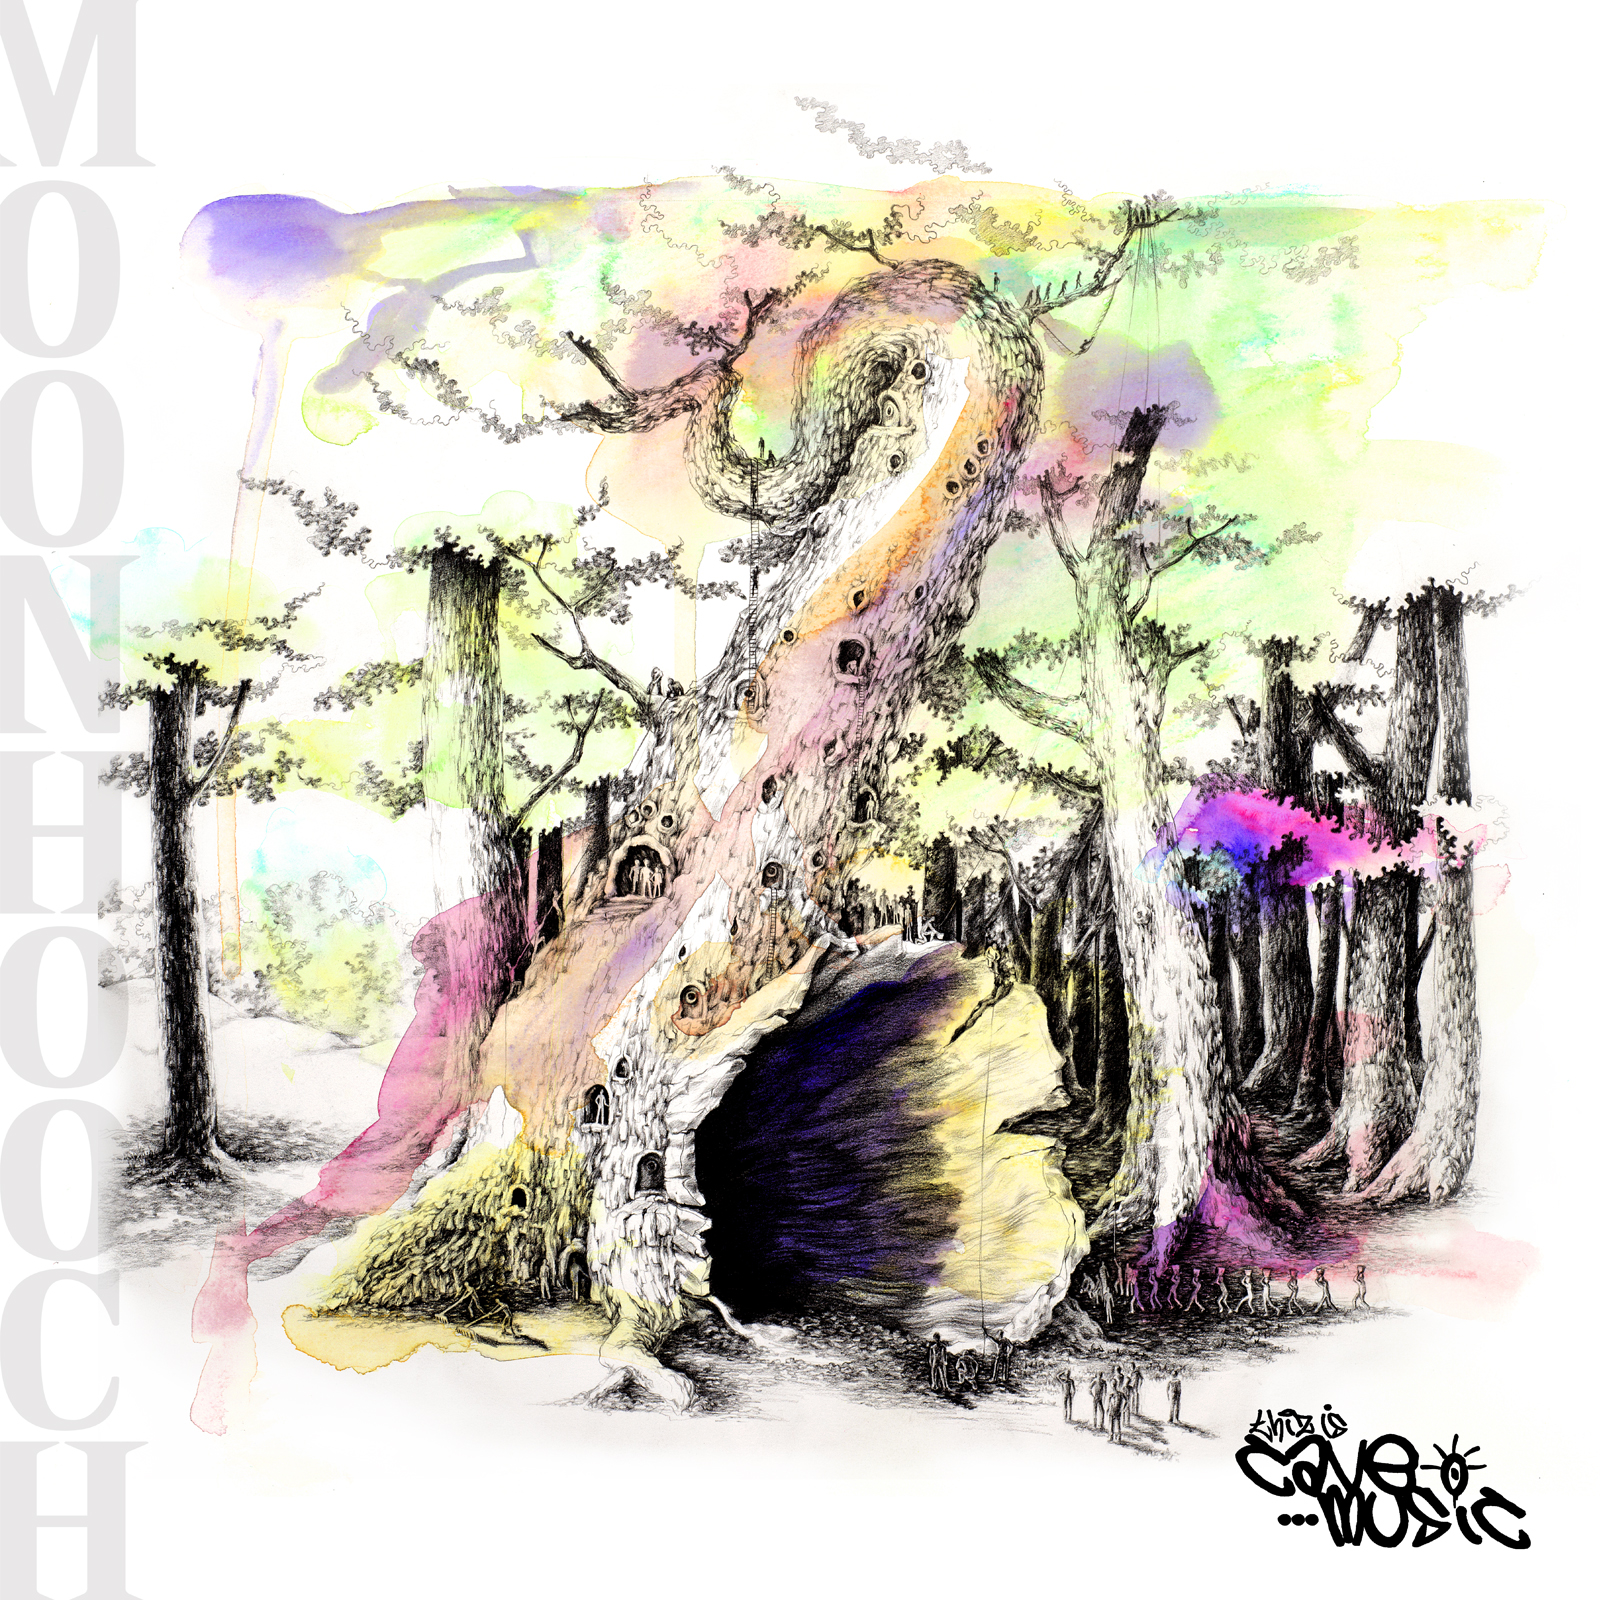 Moon_Hooch_-_This_Is_Cave_Music_cover.jpg